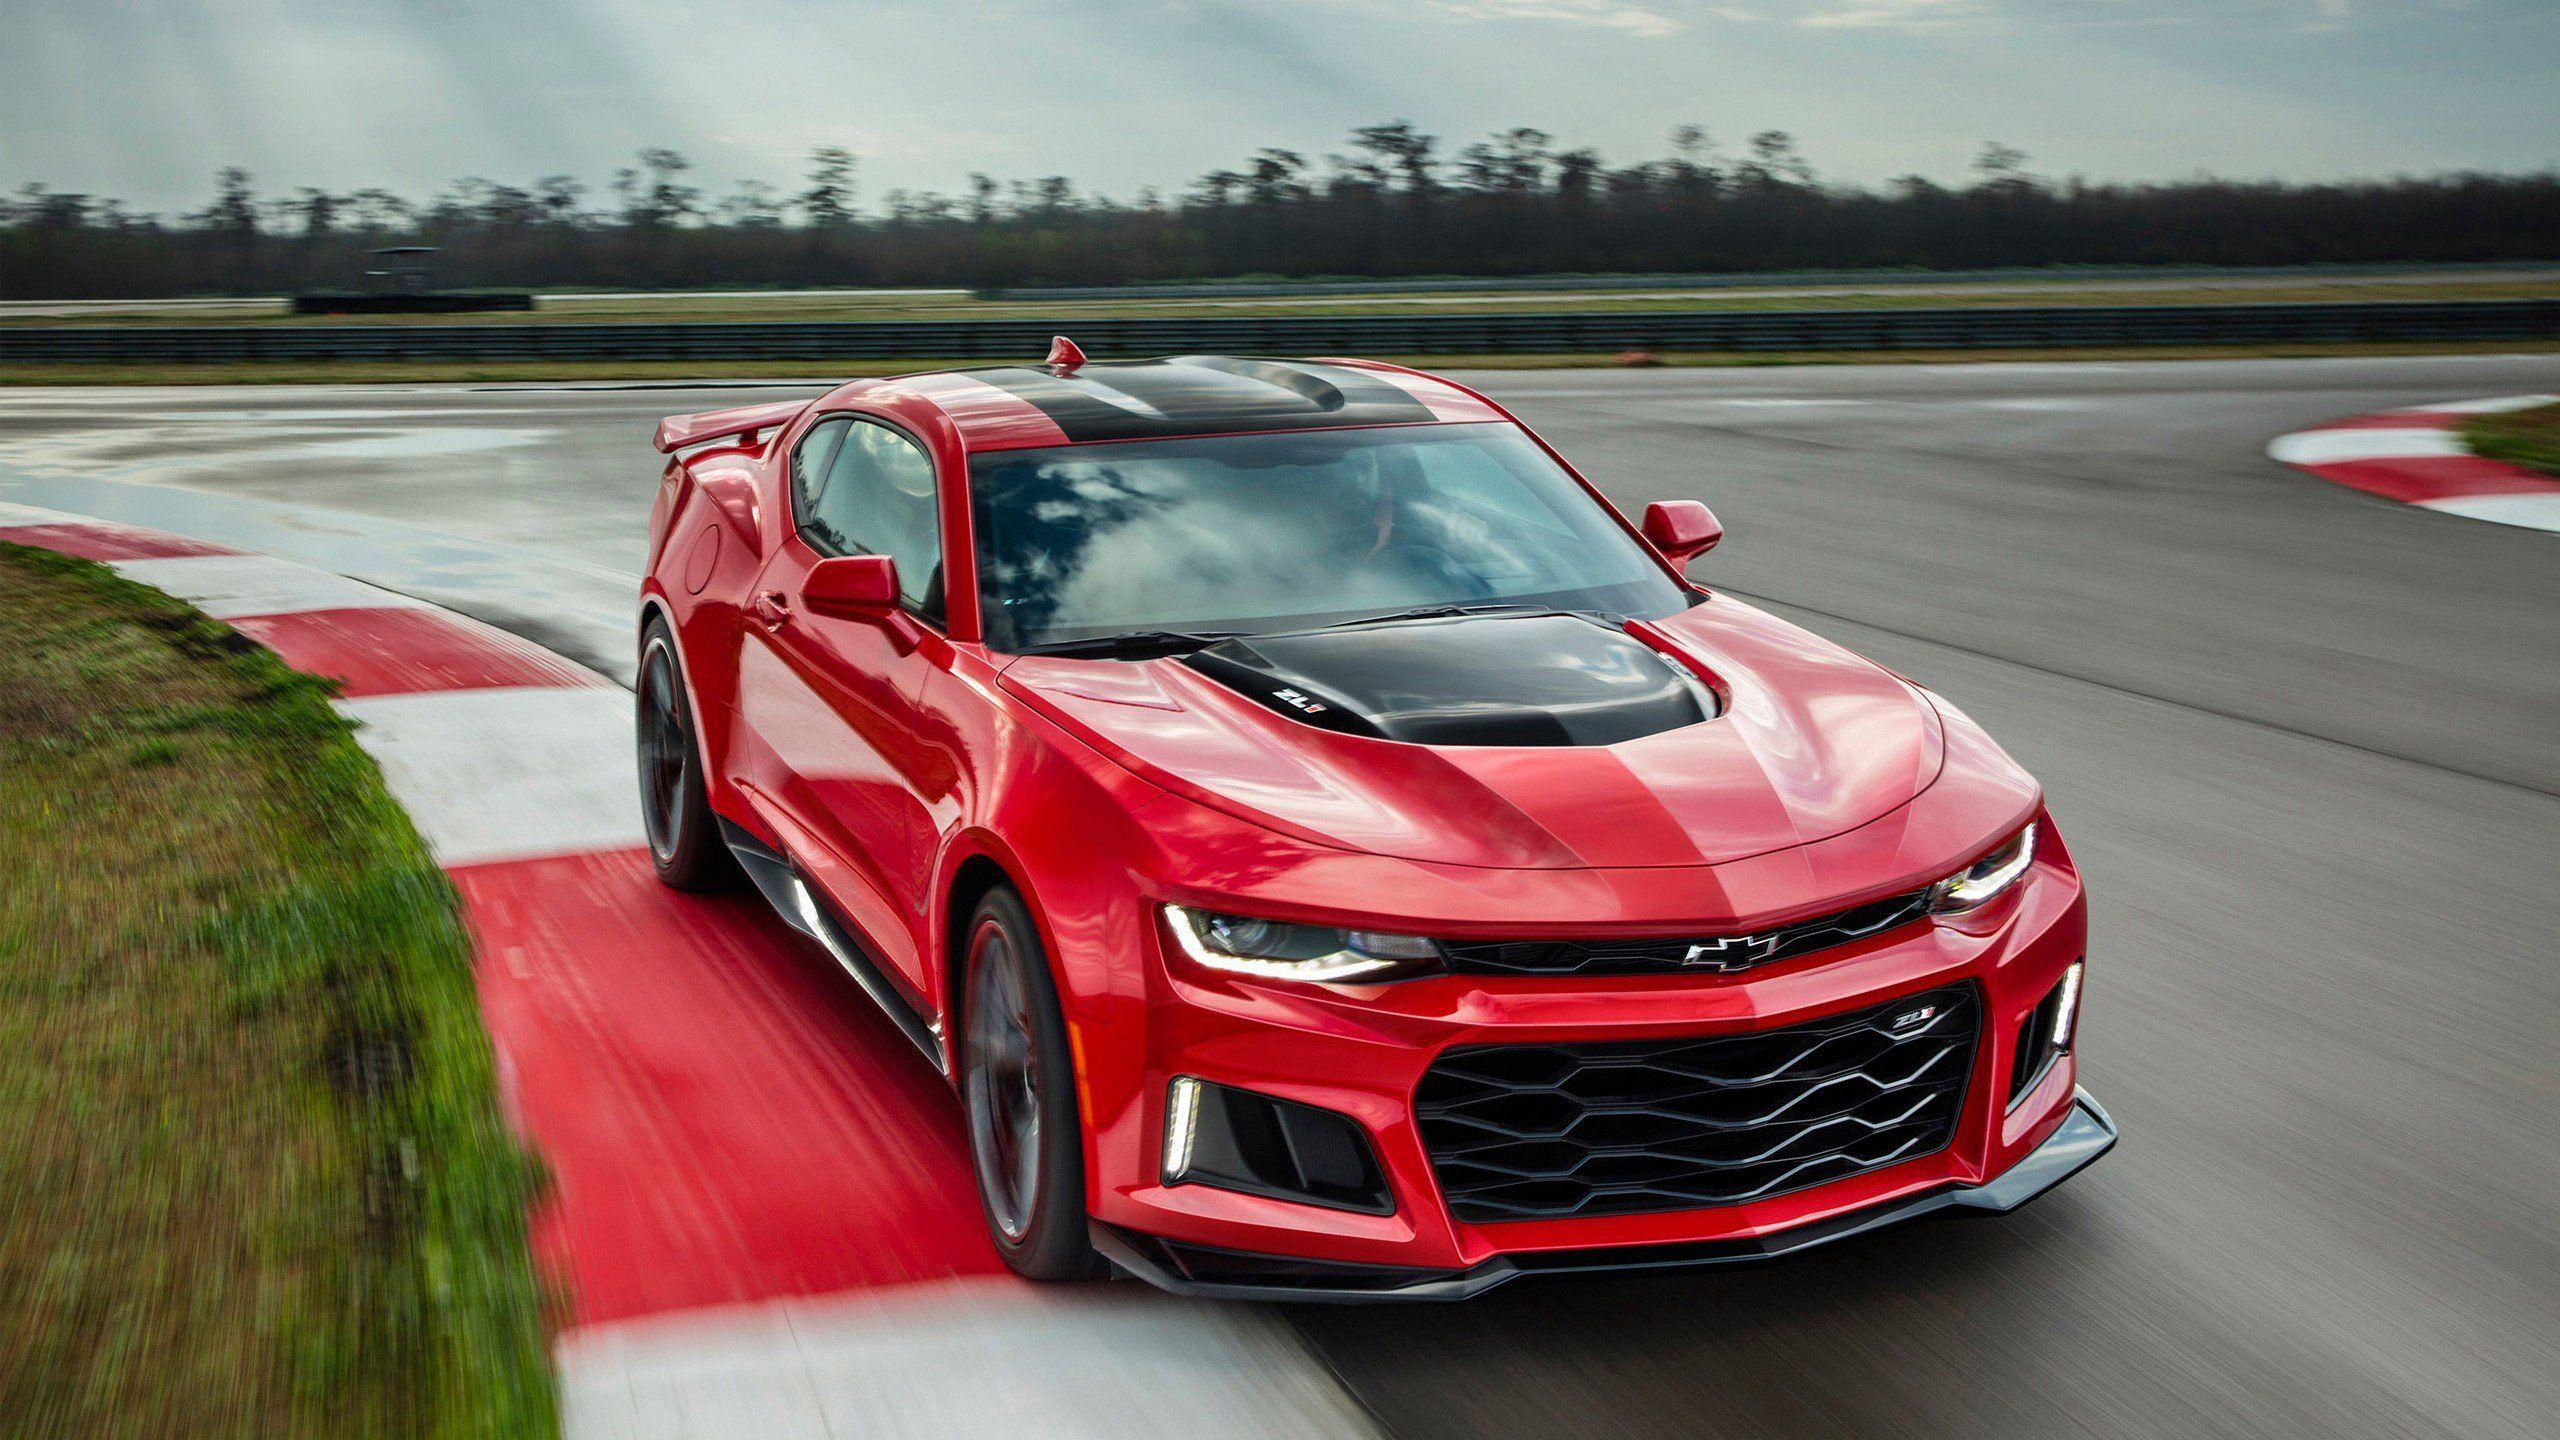 ZL1 Camaro, HD Cars, 4k Wallpapers, Image, Backgrounds, Photos